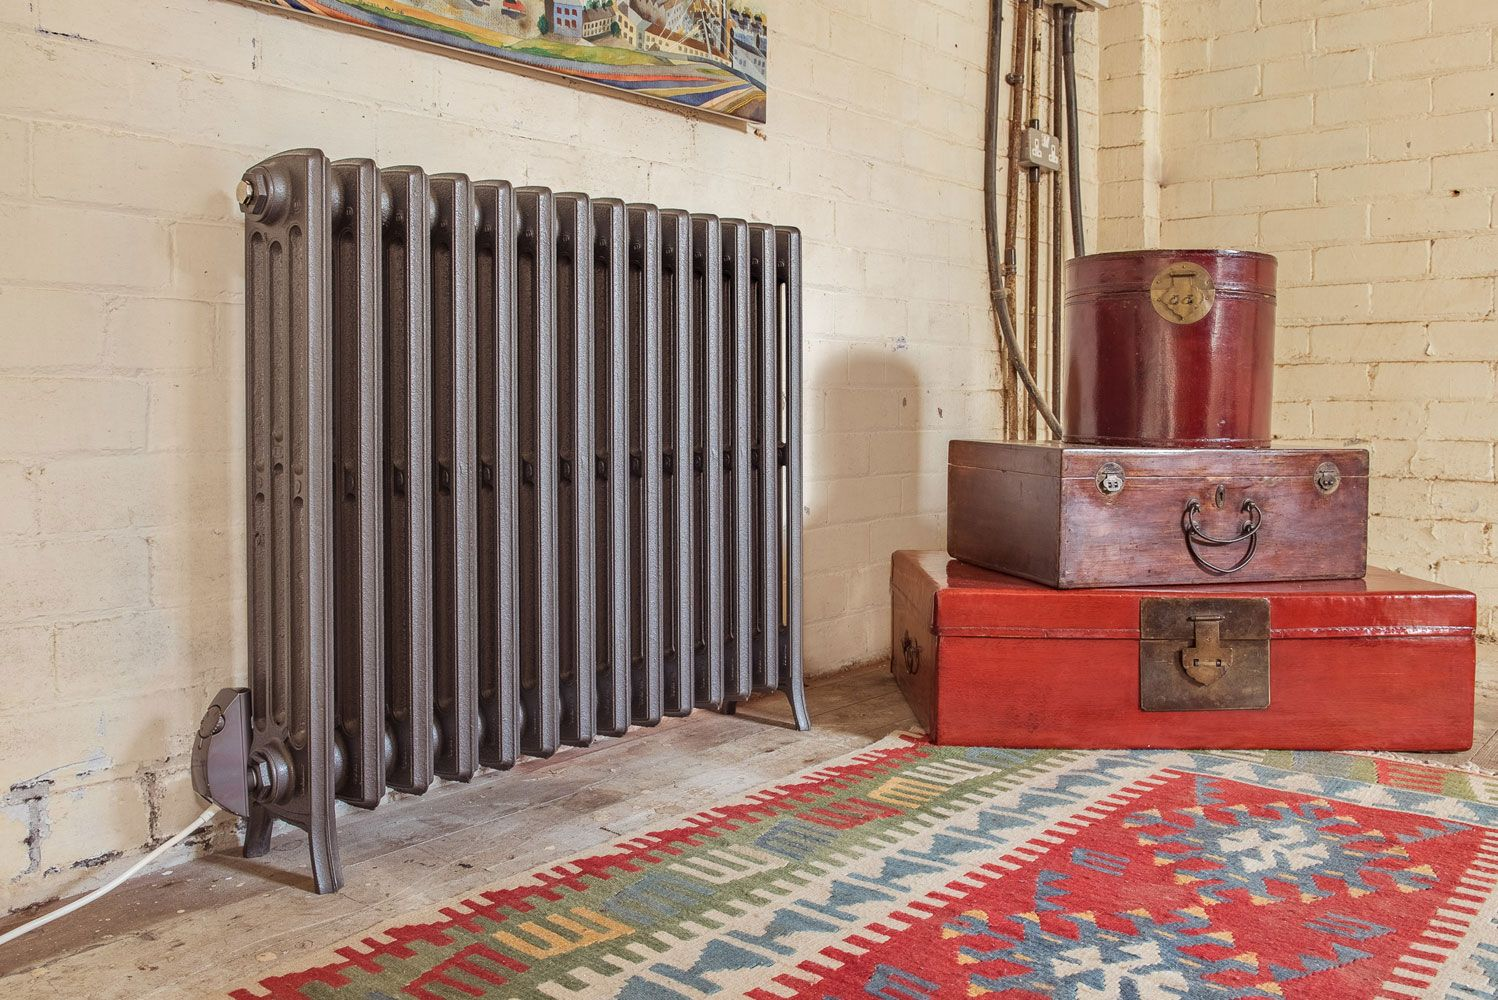 The Etonian electric cast iron radiator has been installed in various National Trust properties.